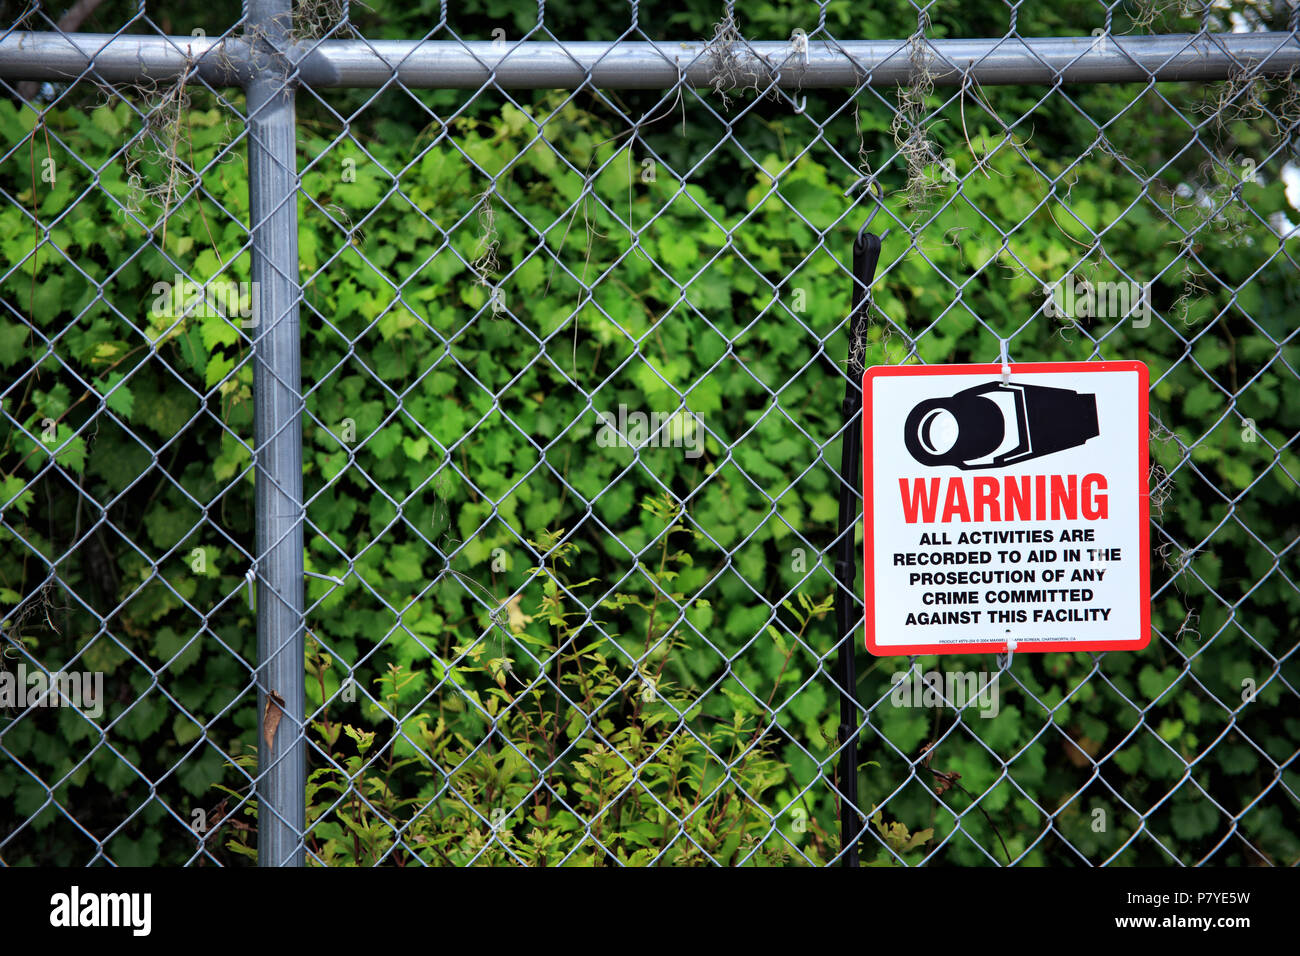 an image of security system sign - Stock Image